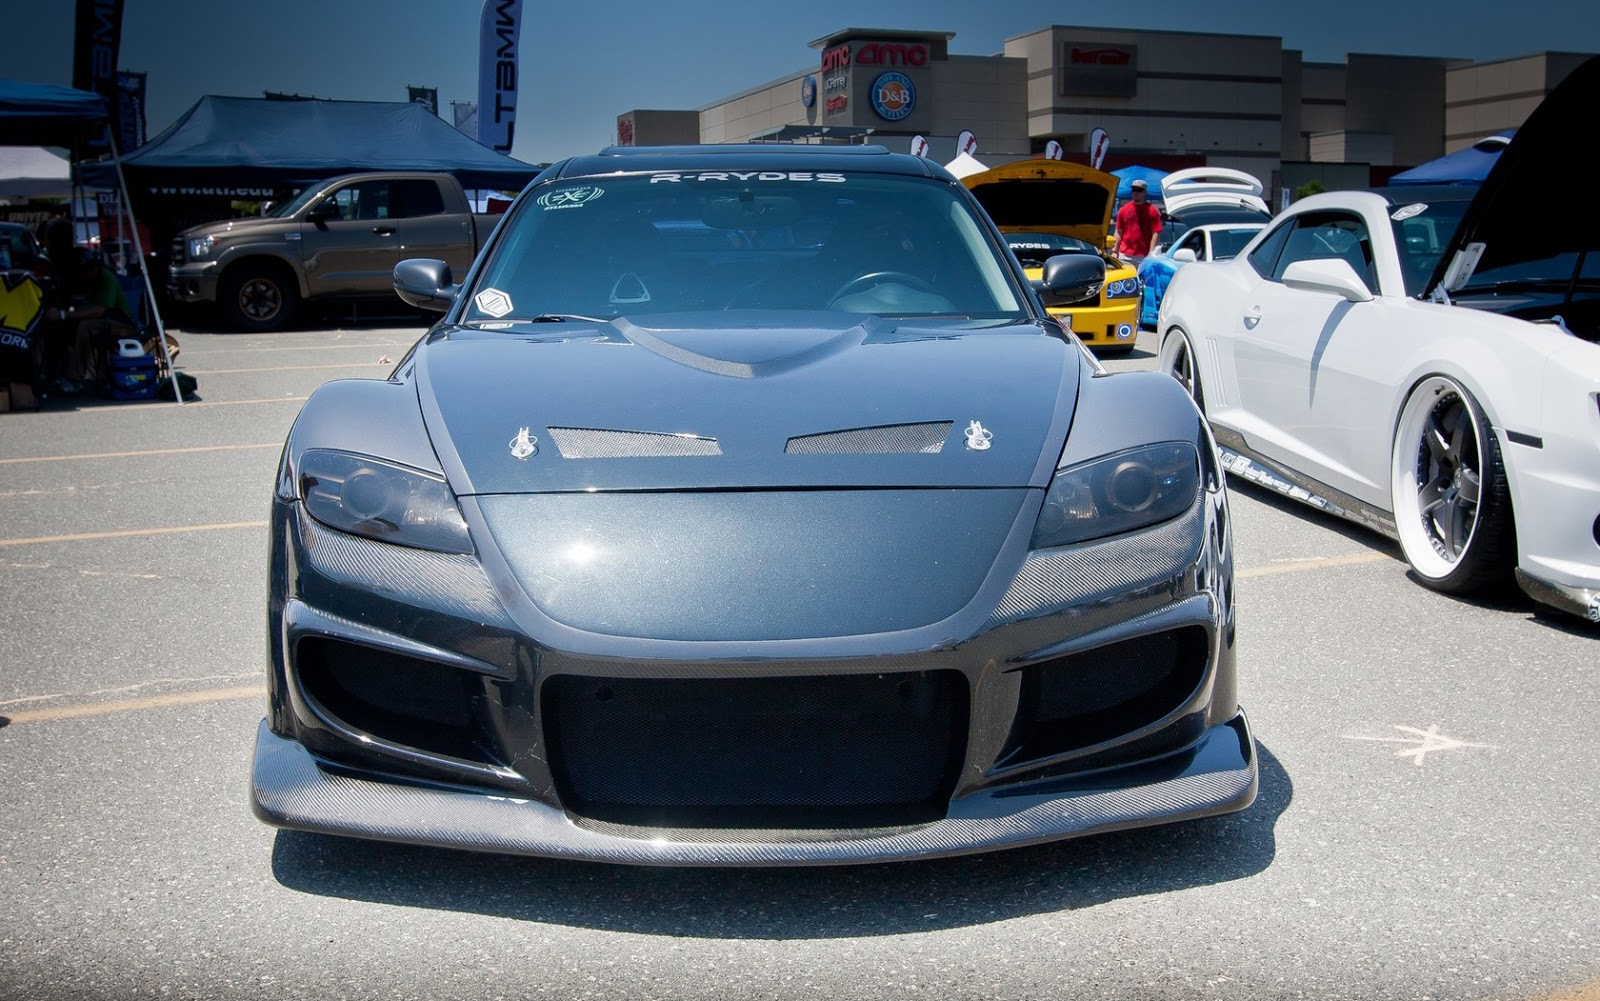 Tuned Mazda RX8 with Veilside Widebody Kit and Ace Wheels ...